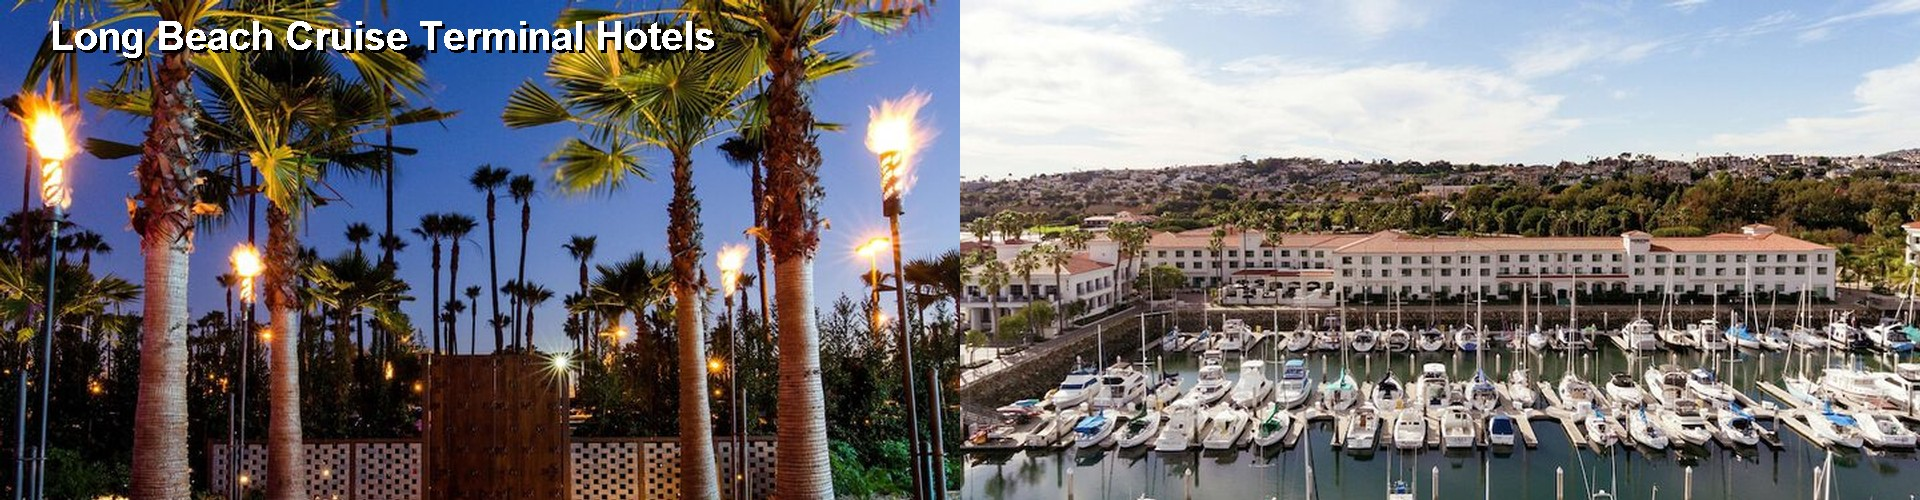 5 Best Hotels near Long Beach Cruise Terminal